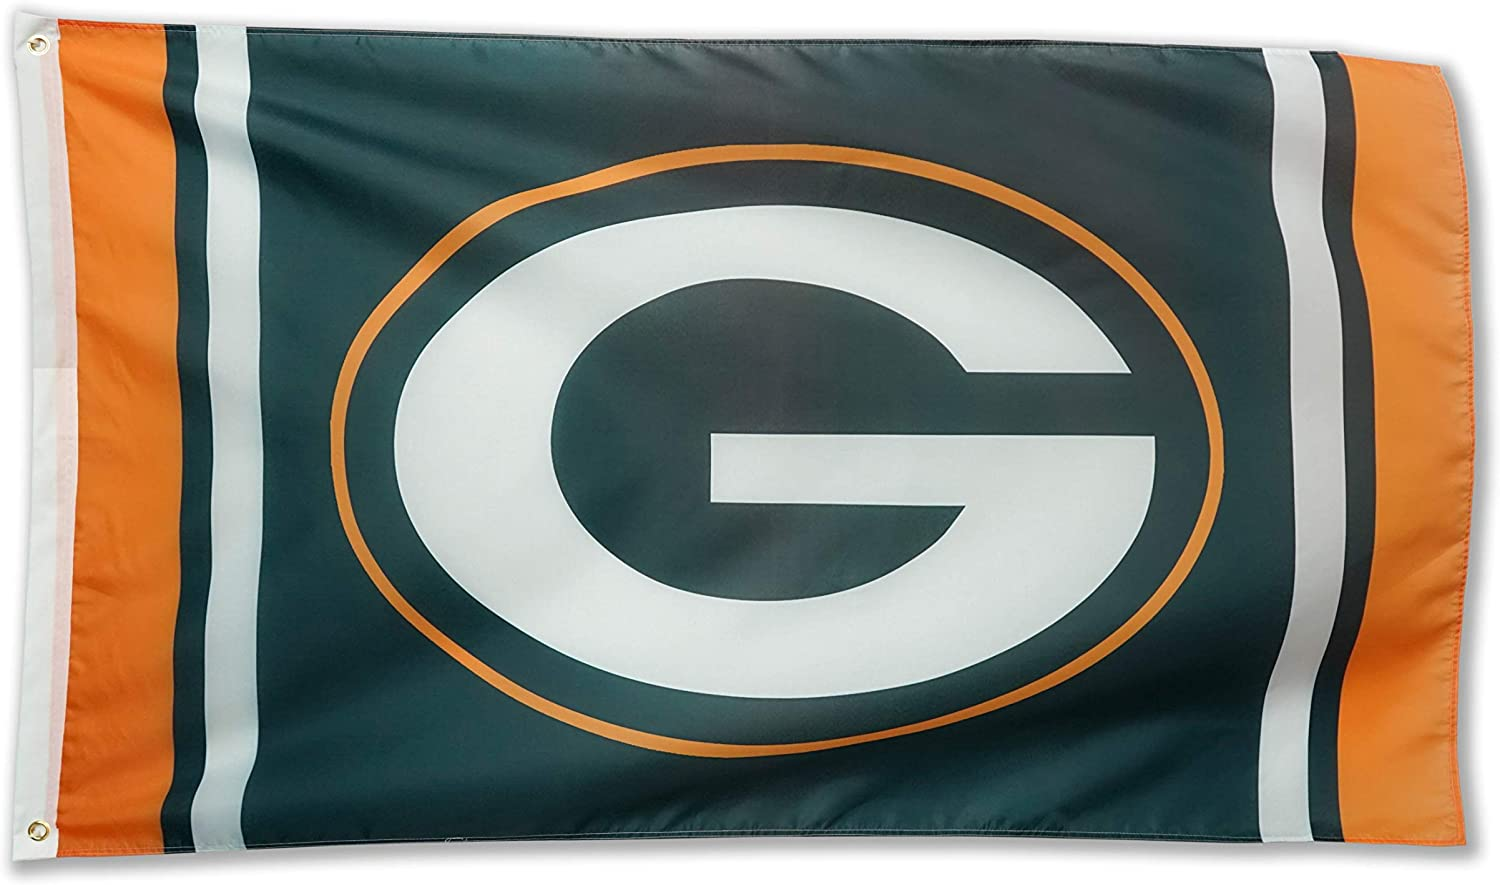 XIFAN Polyester Flag for Green Bay Packers Team Brass Grommets Football Sports Banner 3 X 5 FT